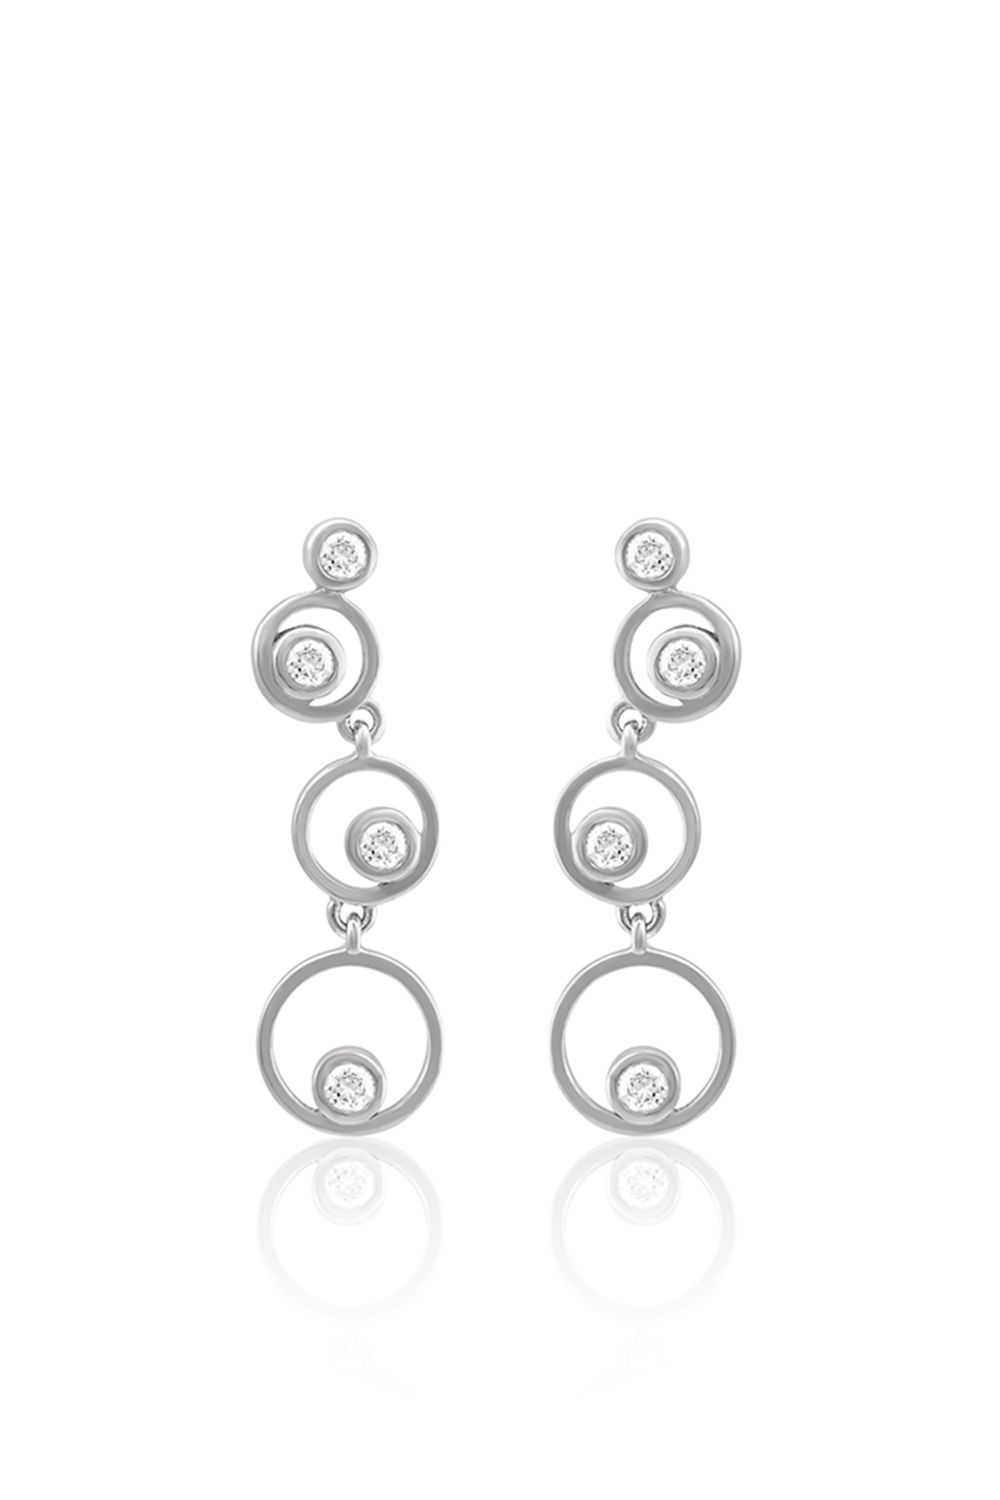 Jewelry retouching service is one kind of Photoshop art to get high-end, attractive as well as gorgeous looking ornaments or jewelry. If you are a jewelry businessman and want to boost your jewelry sell then this retouching service will be your perfect solution. #jewelryretouch #jewelry #earring #photoediting #whitegold #stone